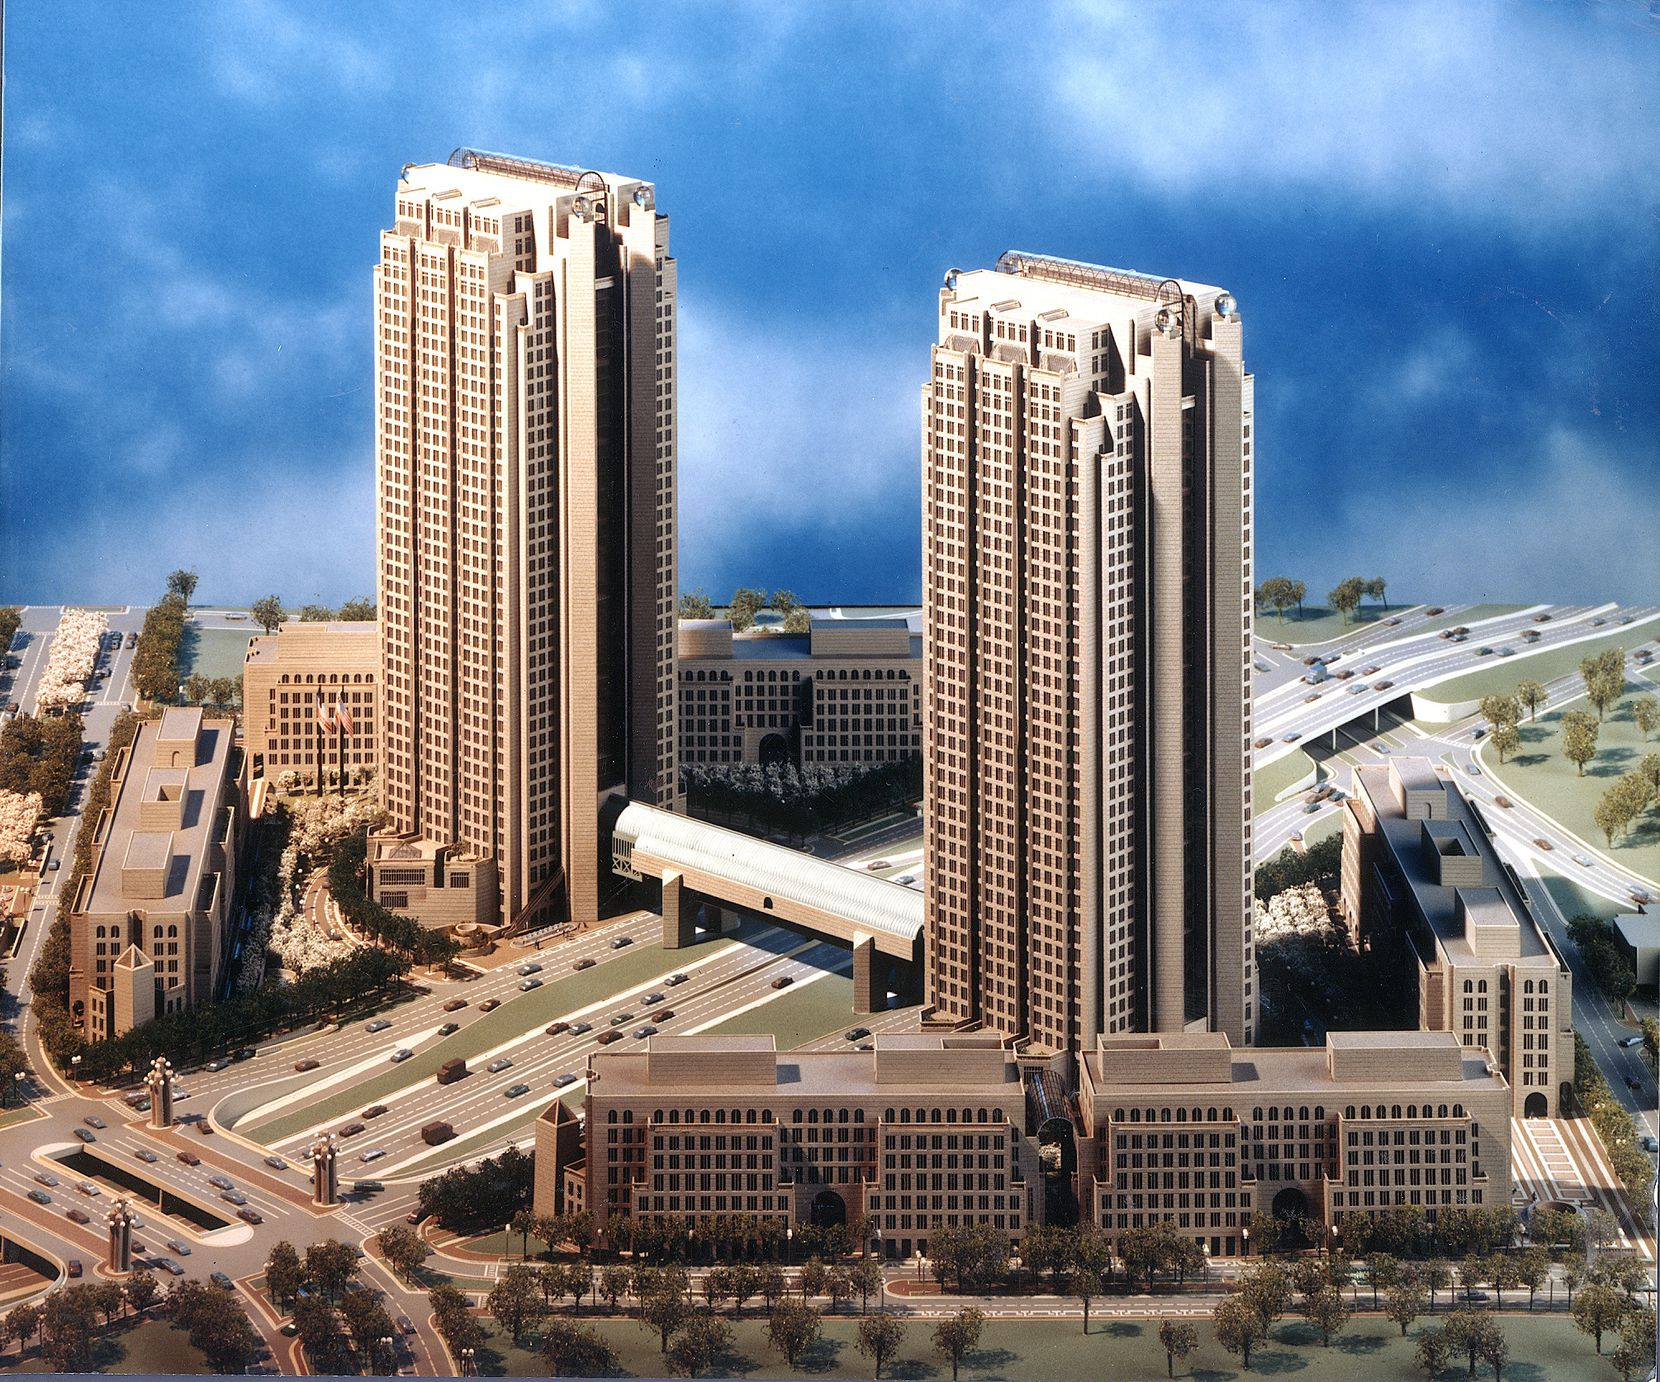 The Cityplace Tower was originally to be part of a larger office complex that included a twin skyscraper and surrounding office buildings that were never constructed.